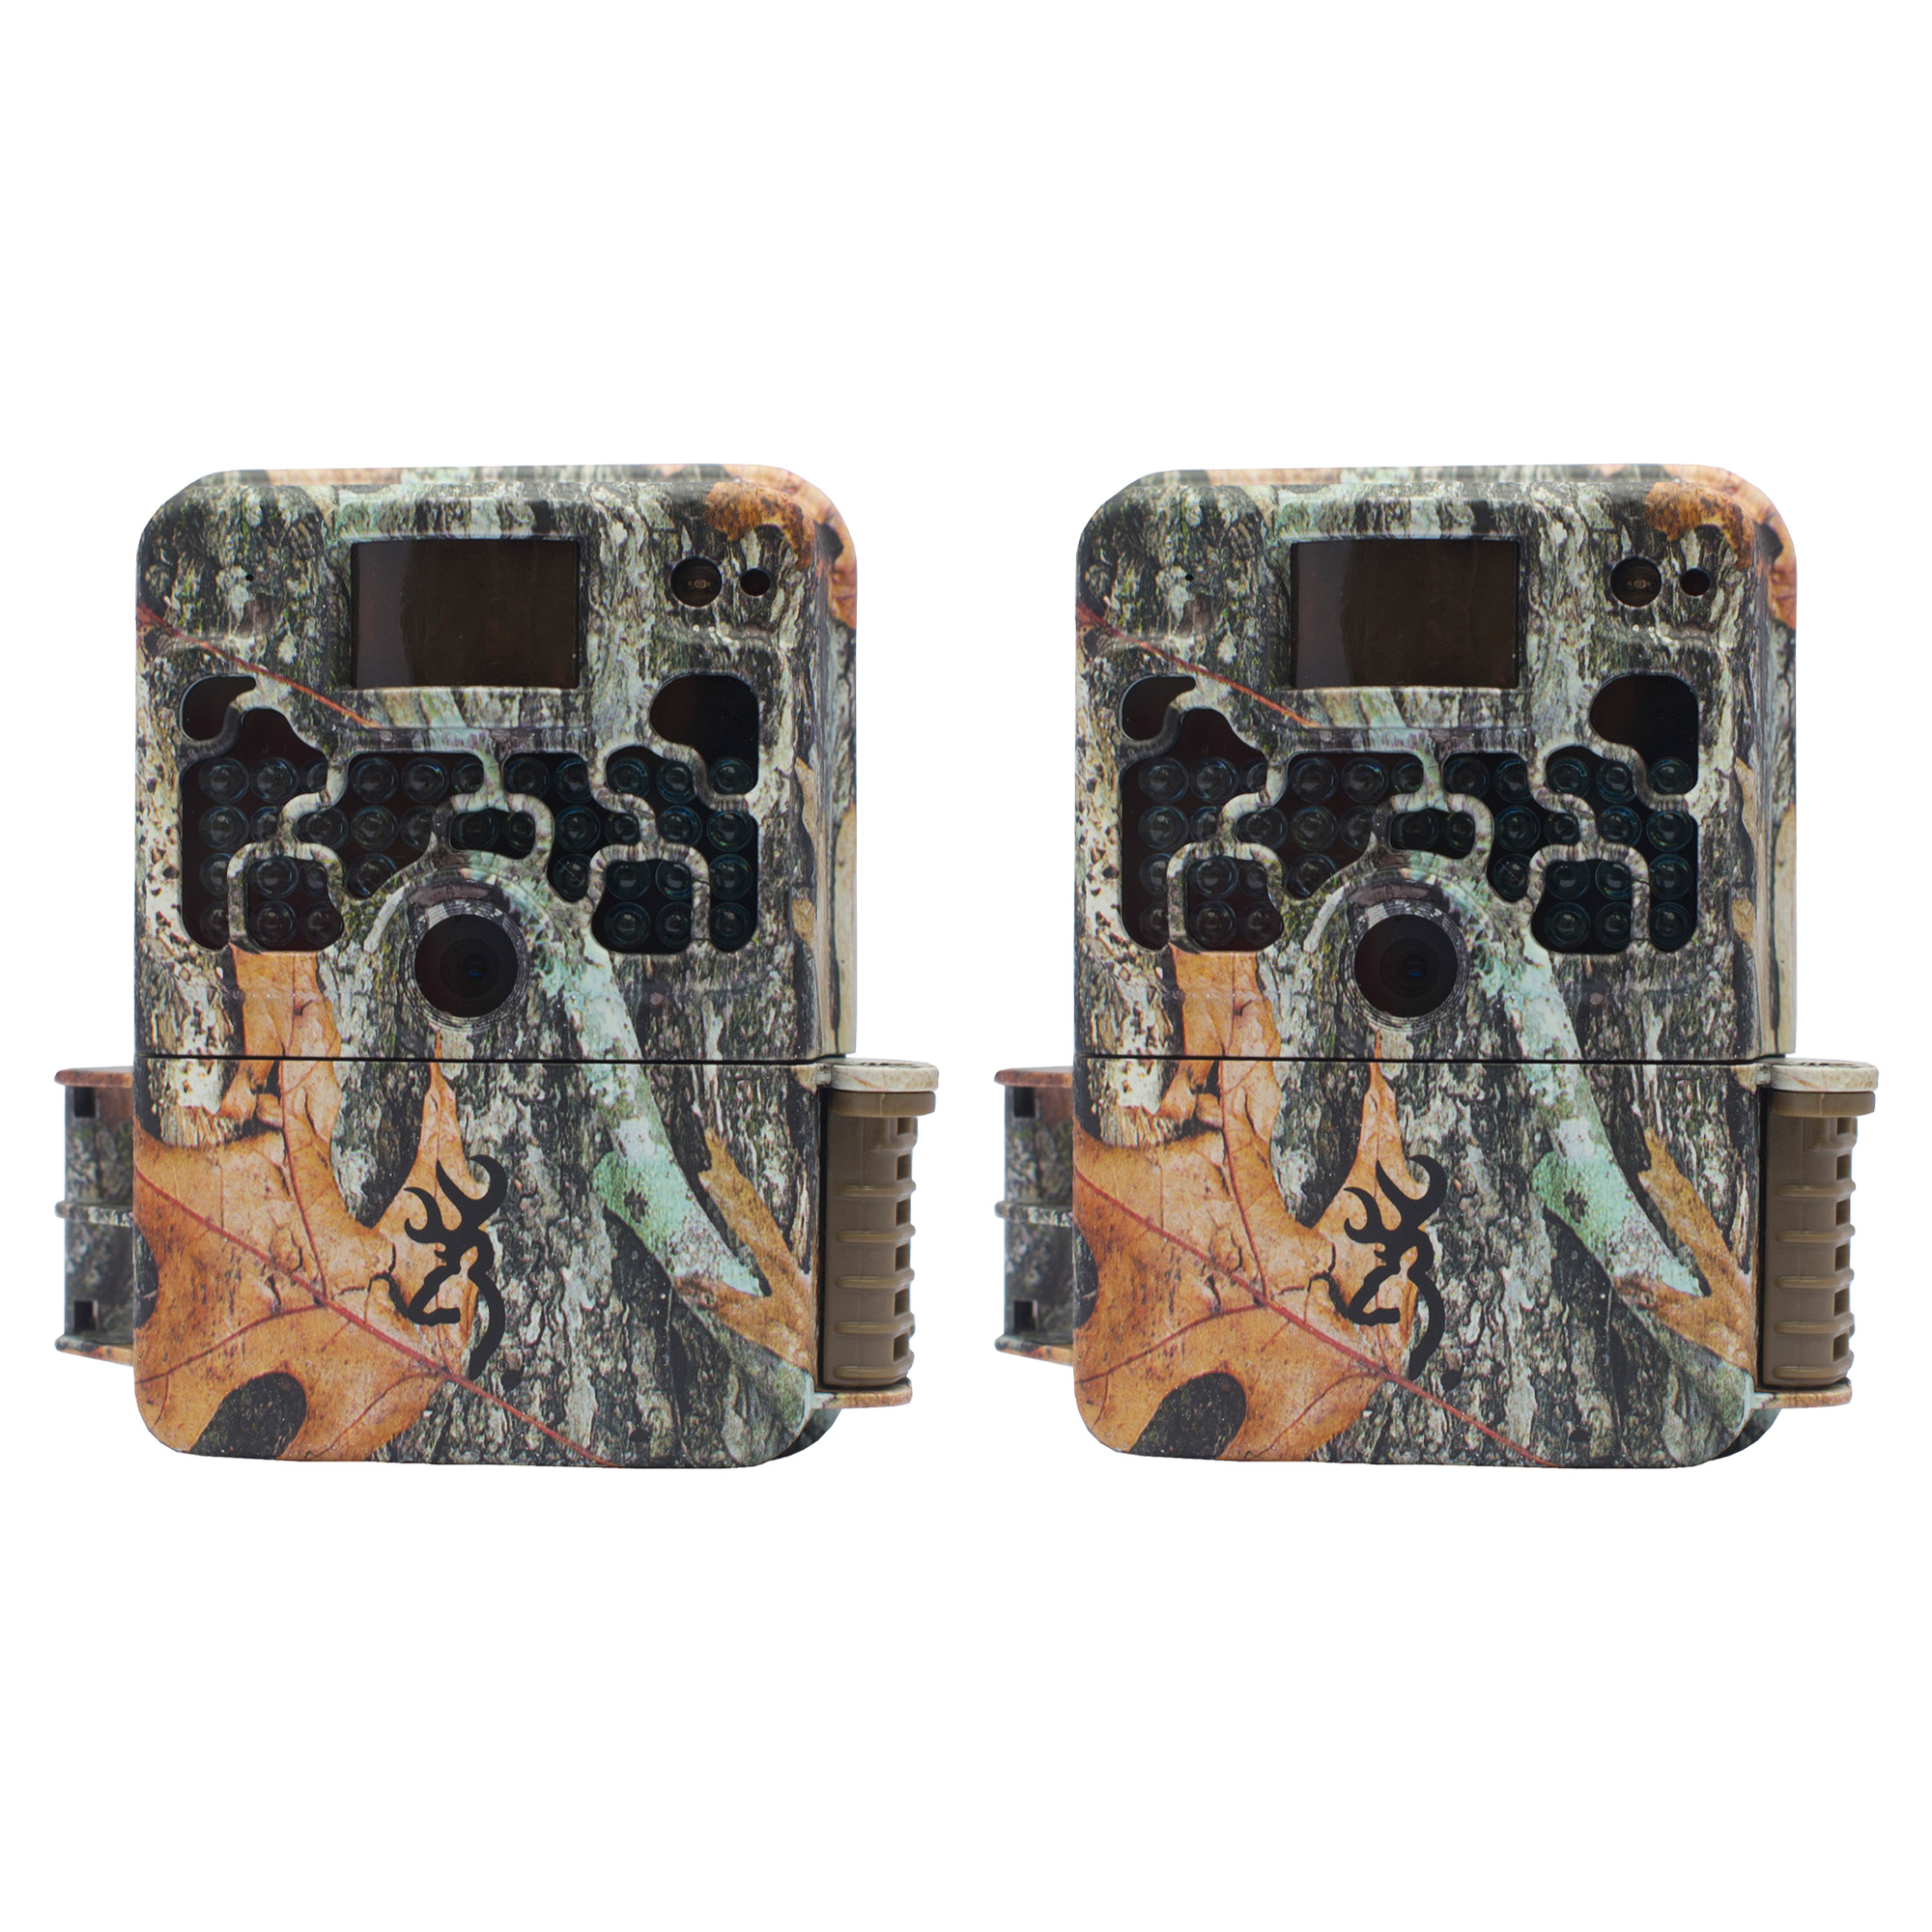 Browning Trail Cameras Strike Force Elite HD 10MP Game Camera, 2 Pack | BTC-5HDE by Browning Trail Cameras